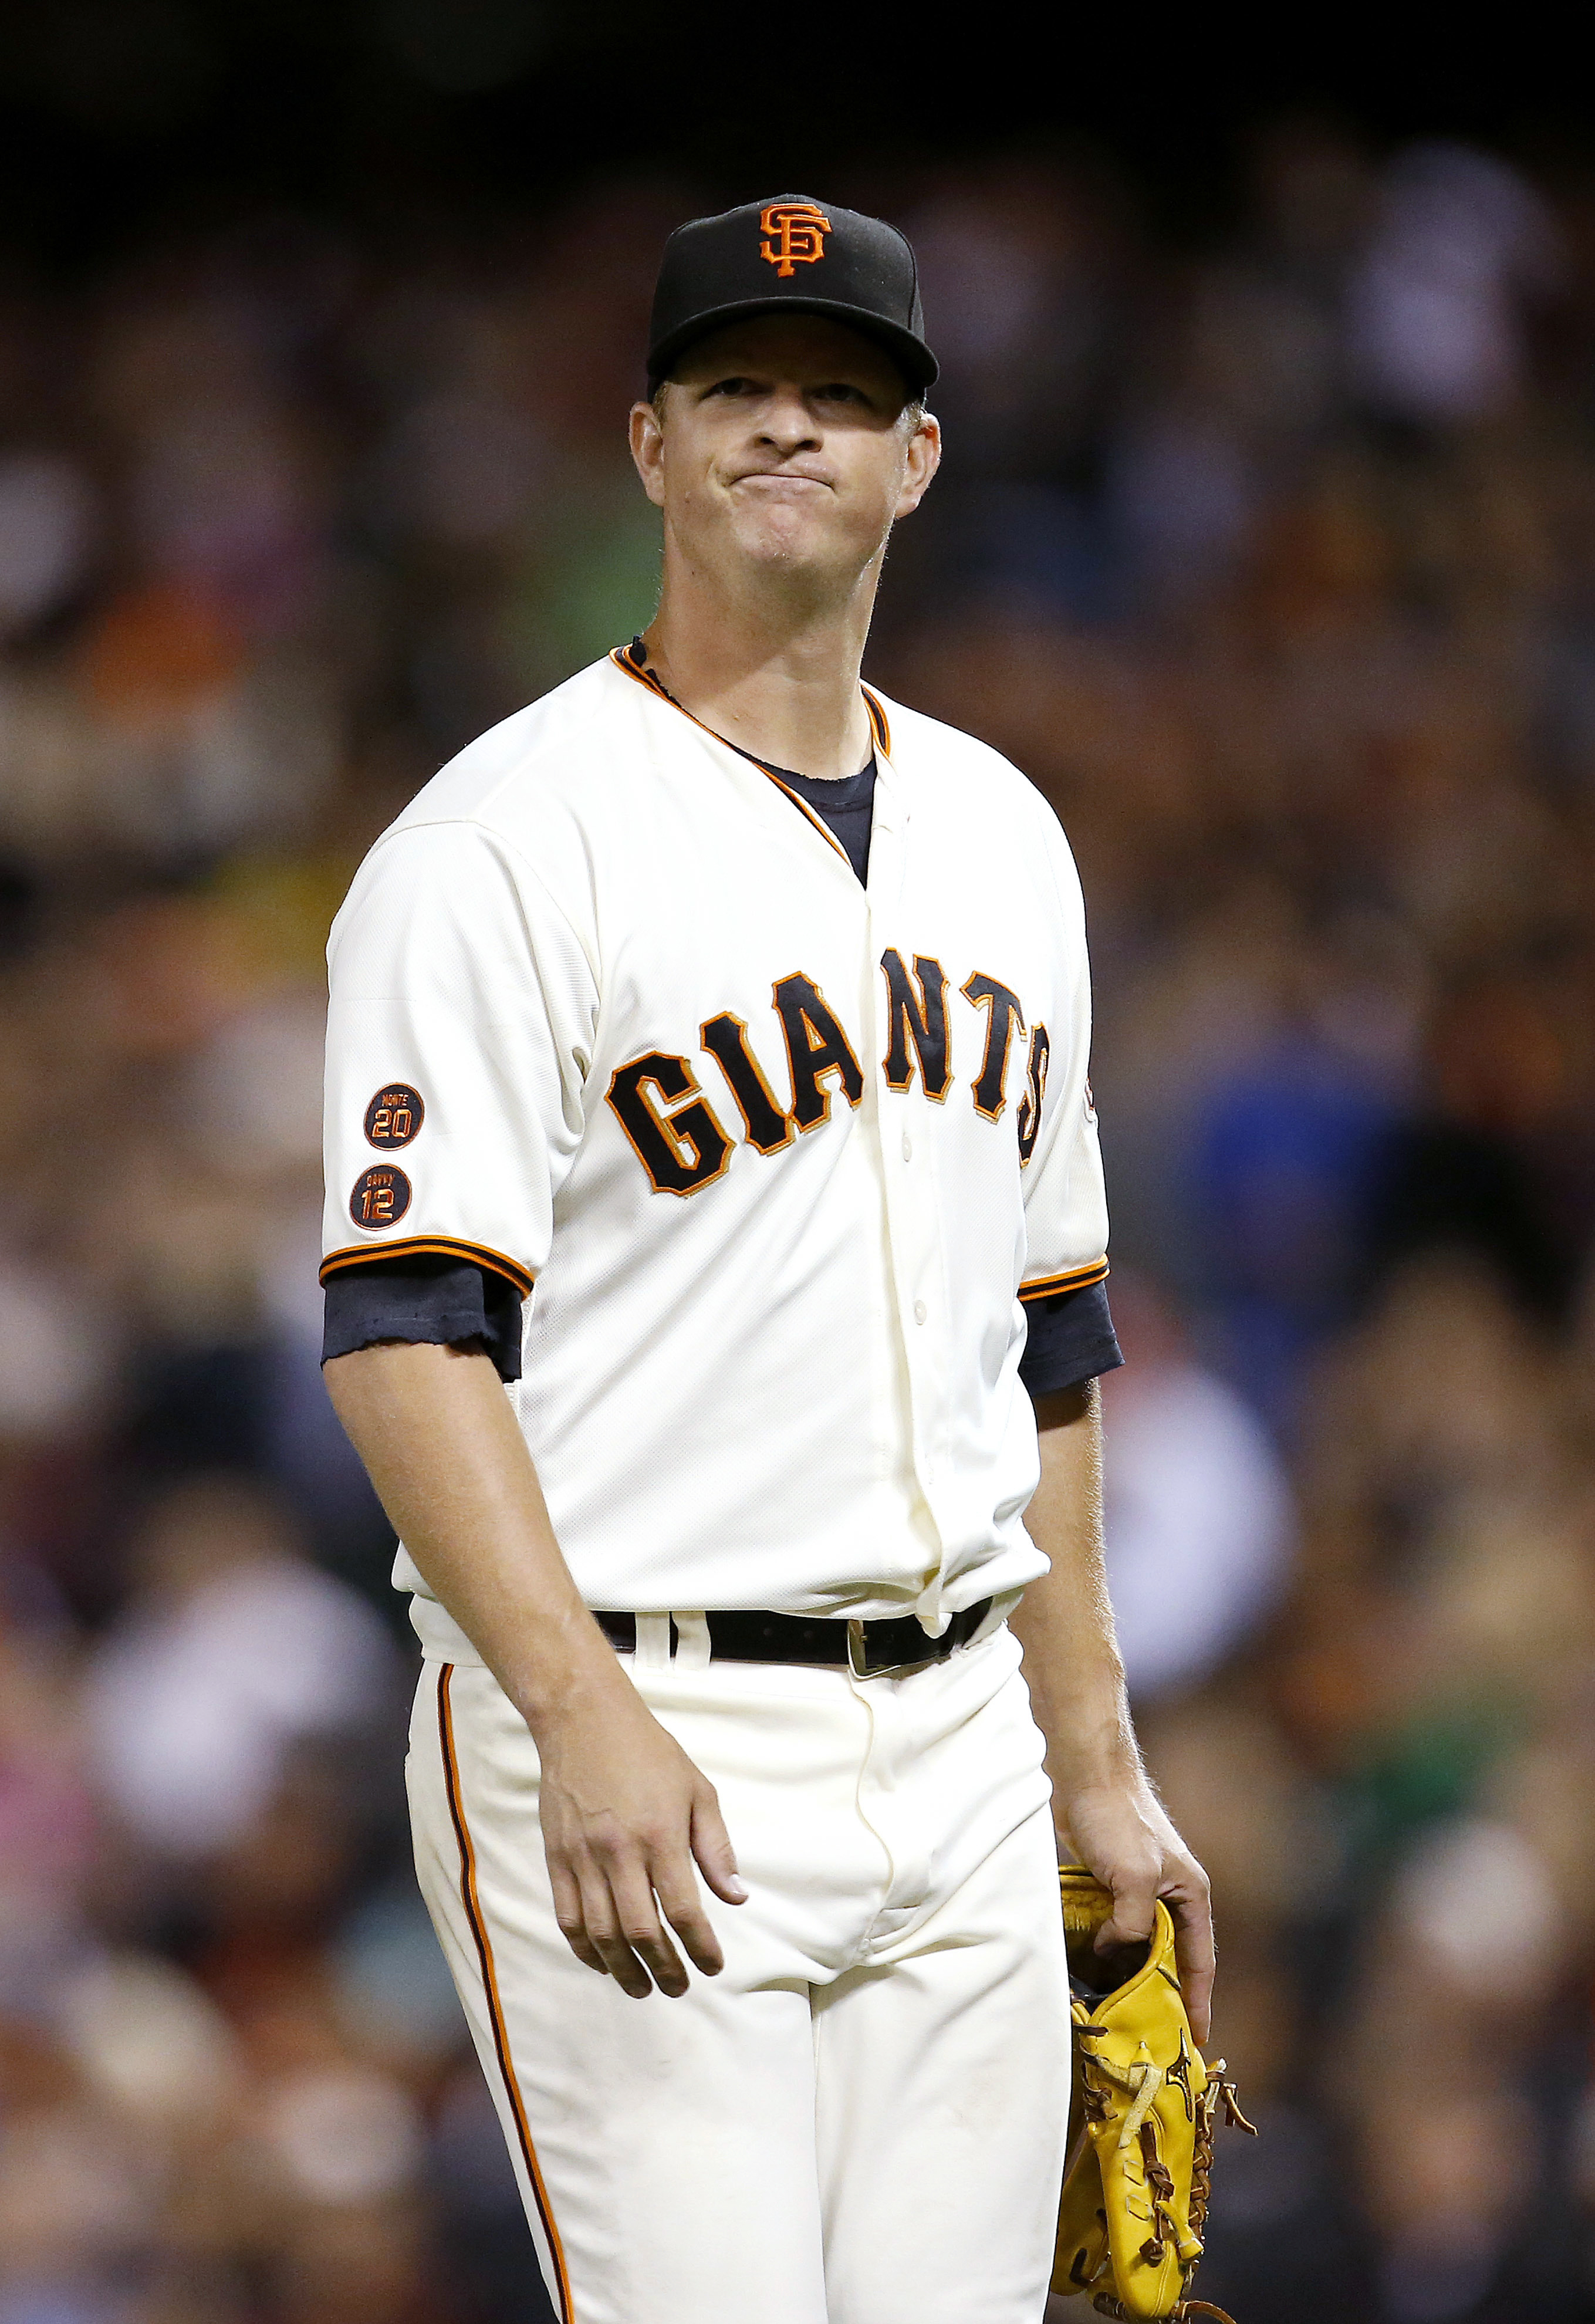 San Francisco Giants pitcher Matt Cain reacts after being taken out of the baseball game against the Cincinnati Reds during the sixth inning Tuesday, July 26, 2016, in San Francisco. (AP Photo/Tony Avelar)